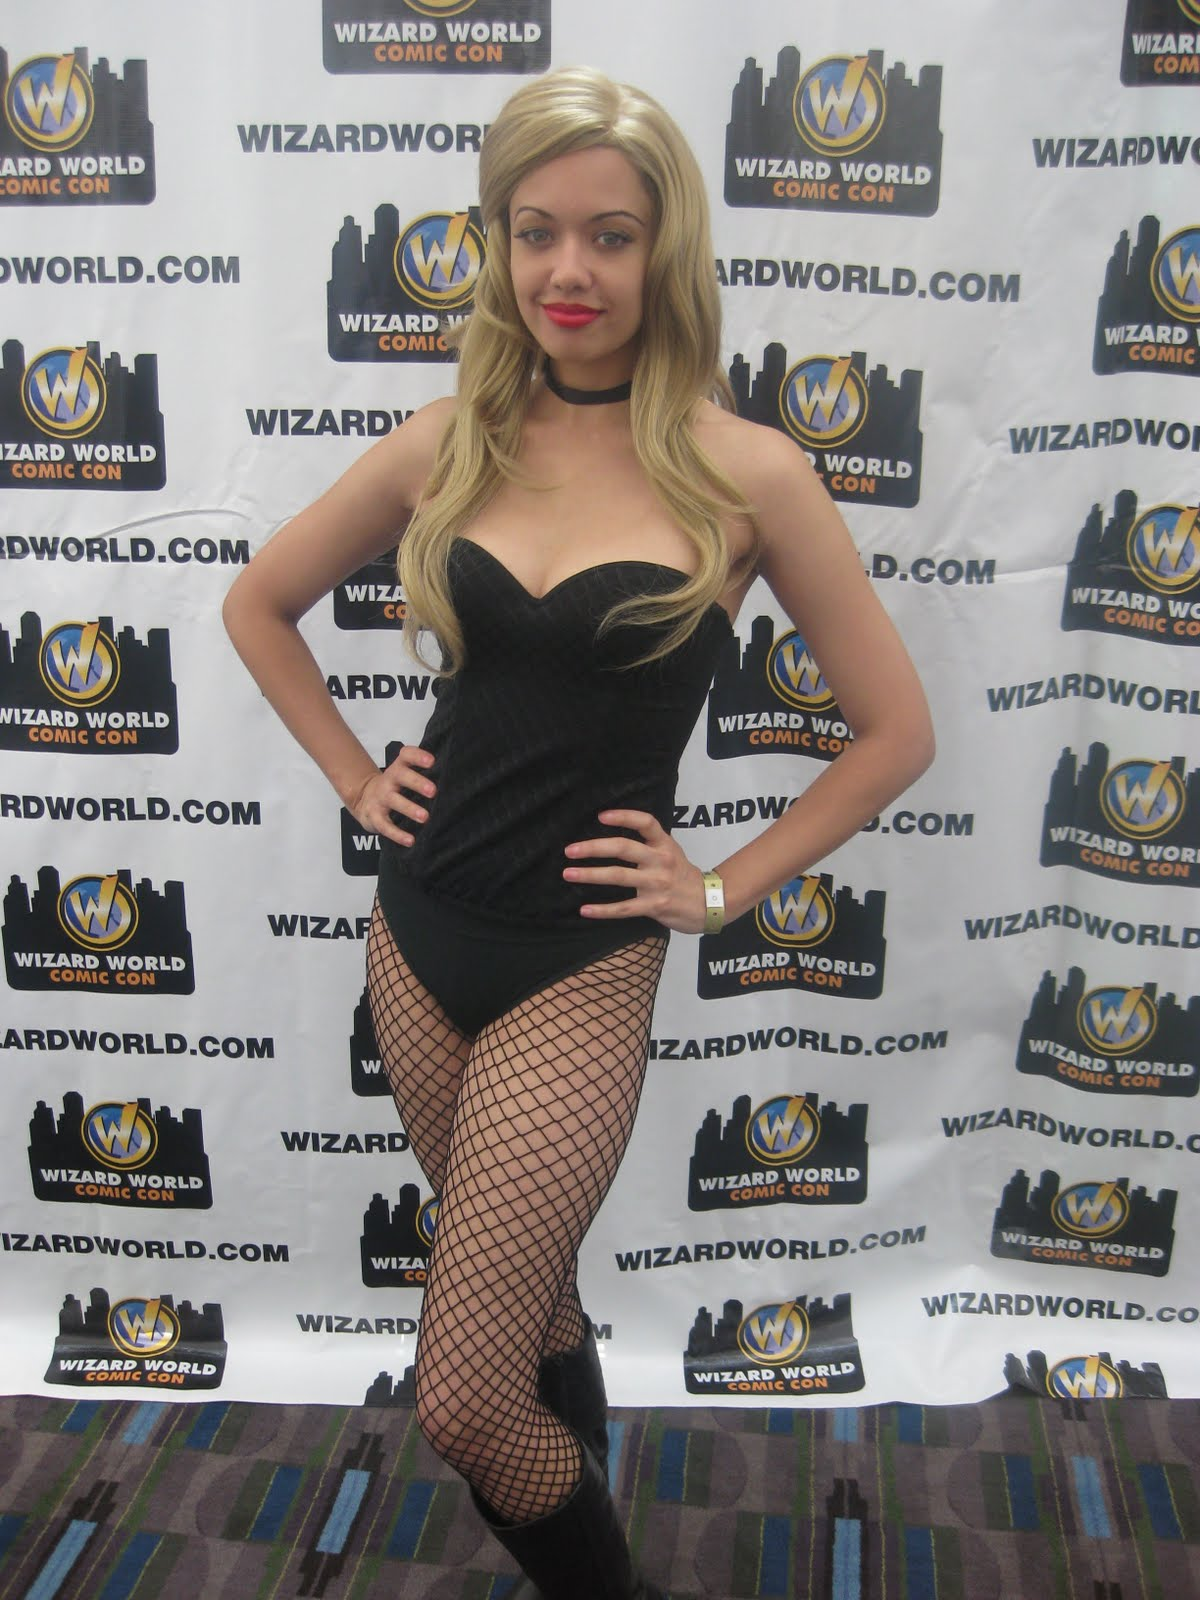 Confessions of a Cosplay Girl: My personal experience @ Wizard ...